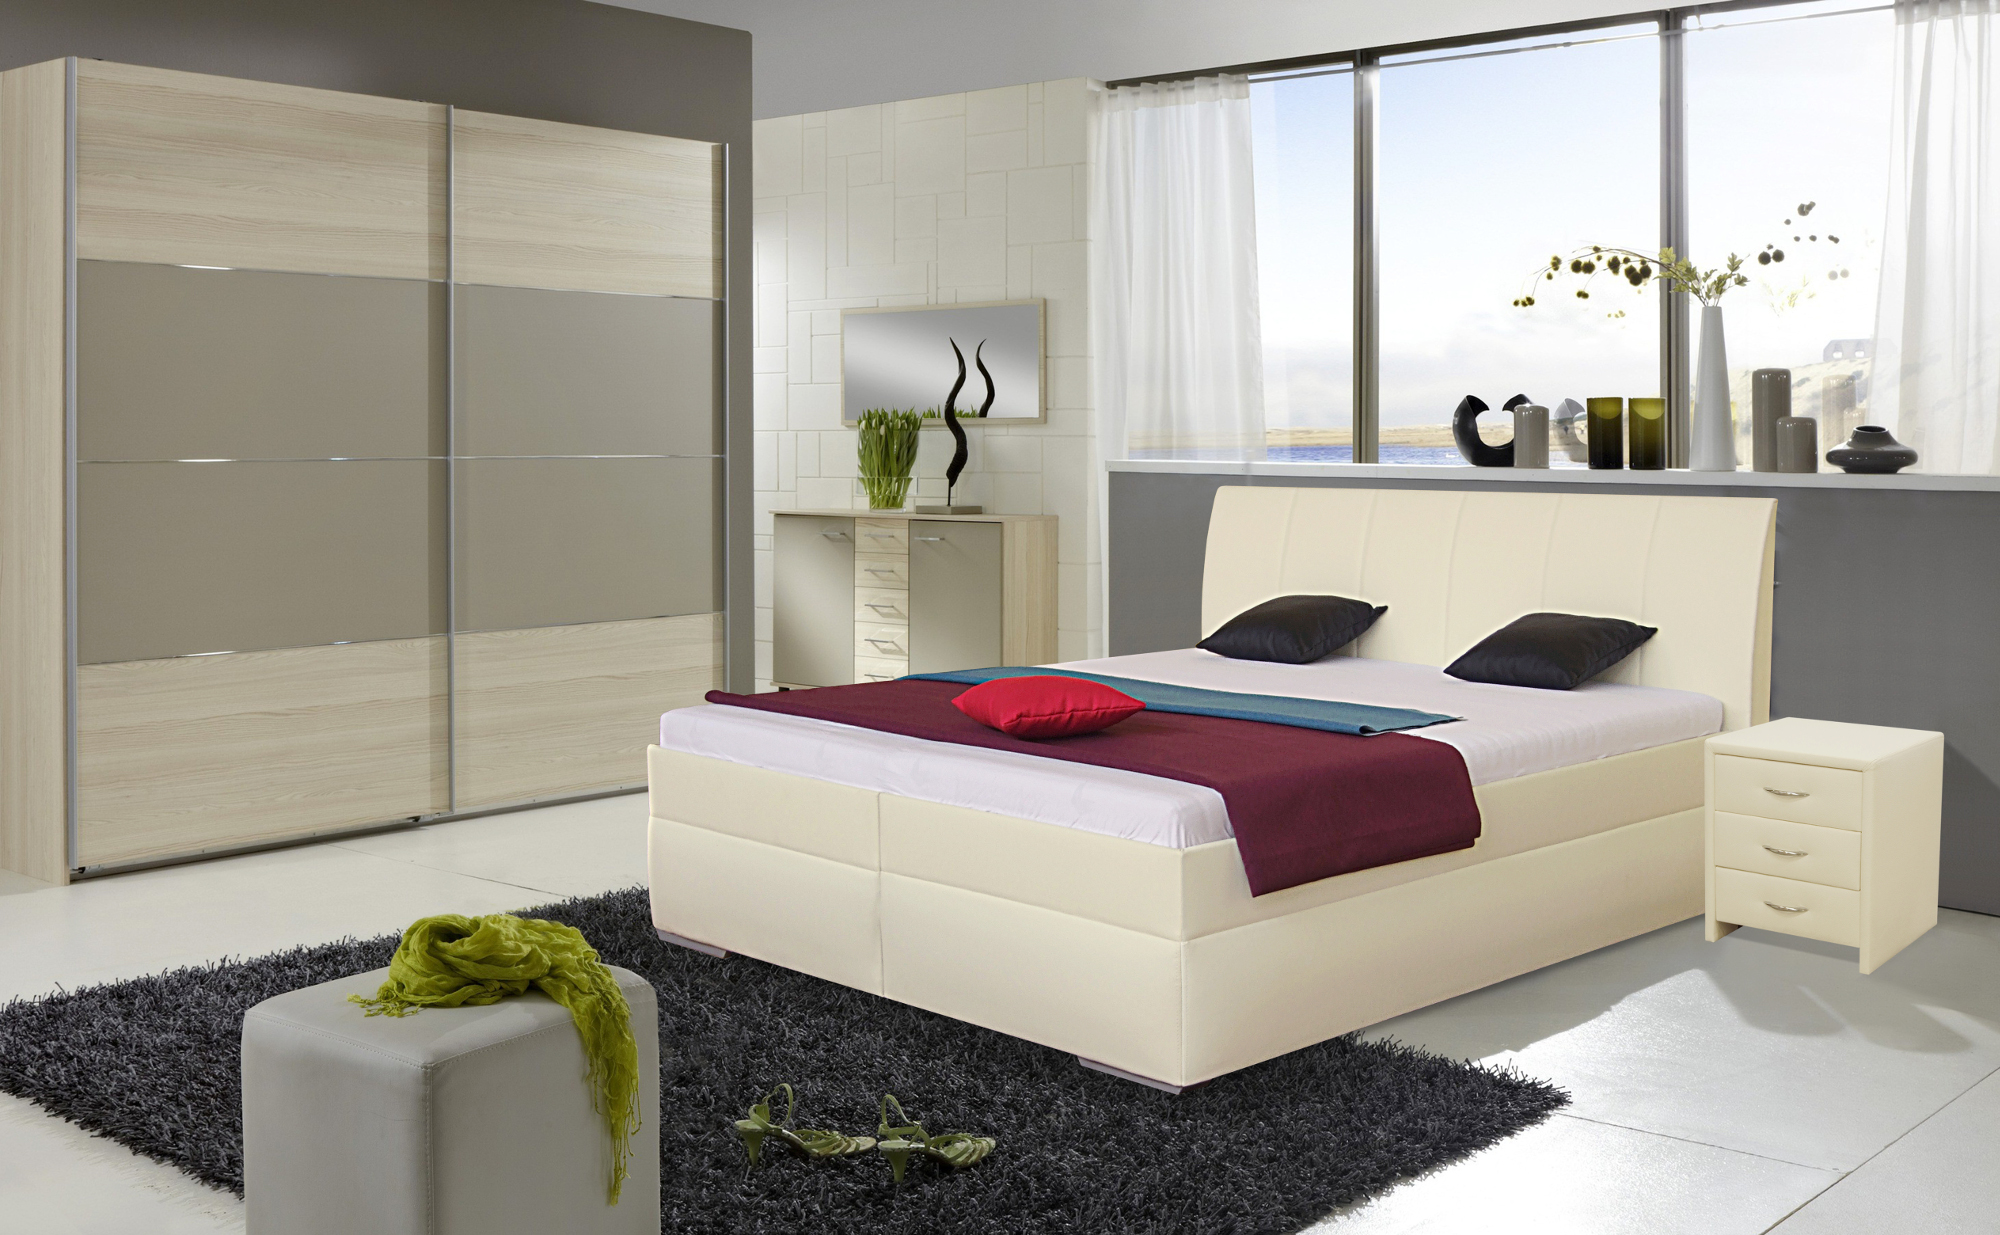 160x200 colchn cotton organic x with 160x200 gallery of matelas matelas mmoire de forme. Black Bedroom Furniture Sets. Home Design Ideas